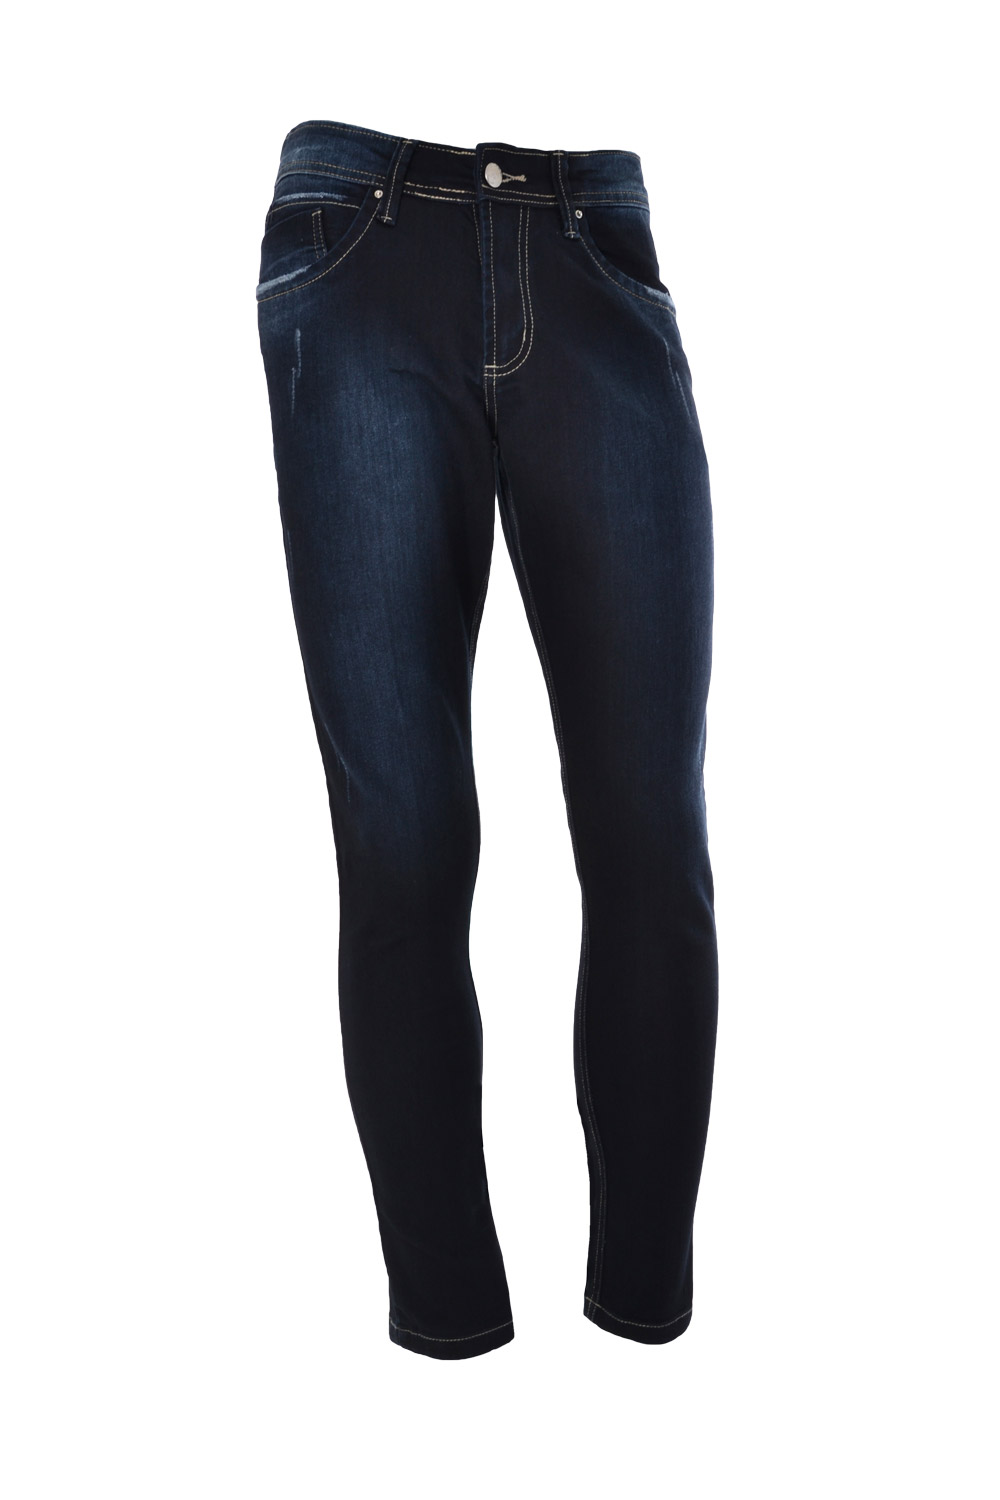 CALÇA JEANS BLUES SKINNY POLIALGODAO & ELASTANO STRETCH STONED BLACK BLUE